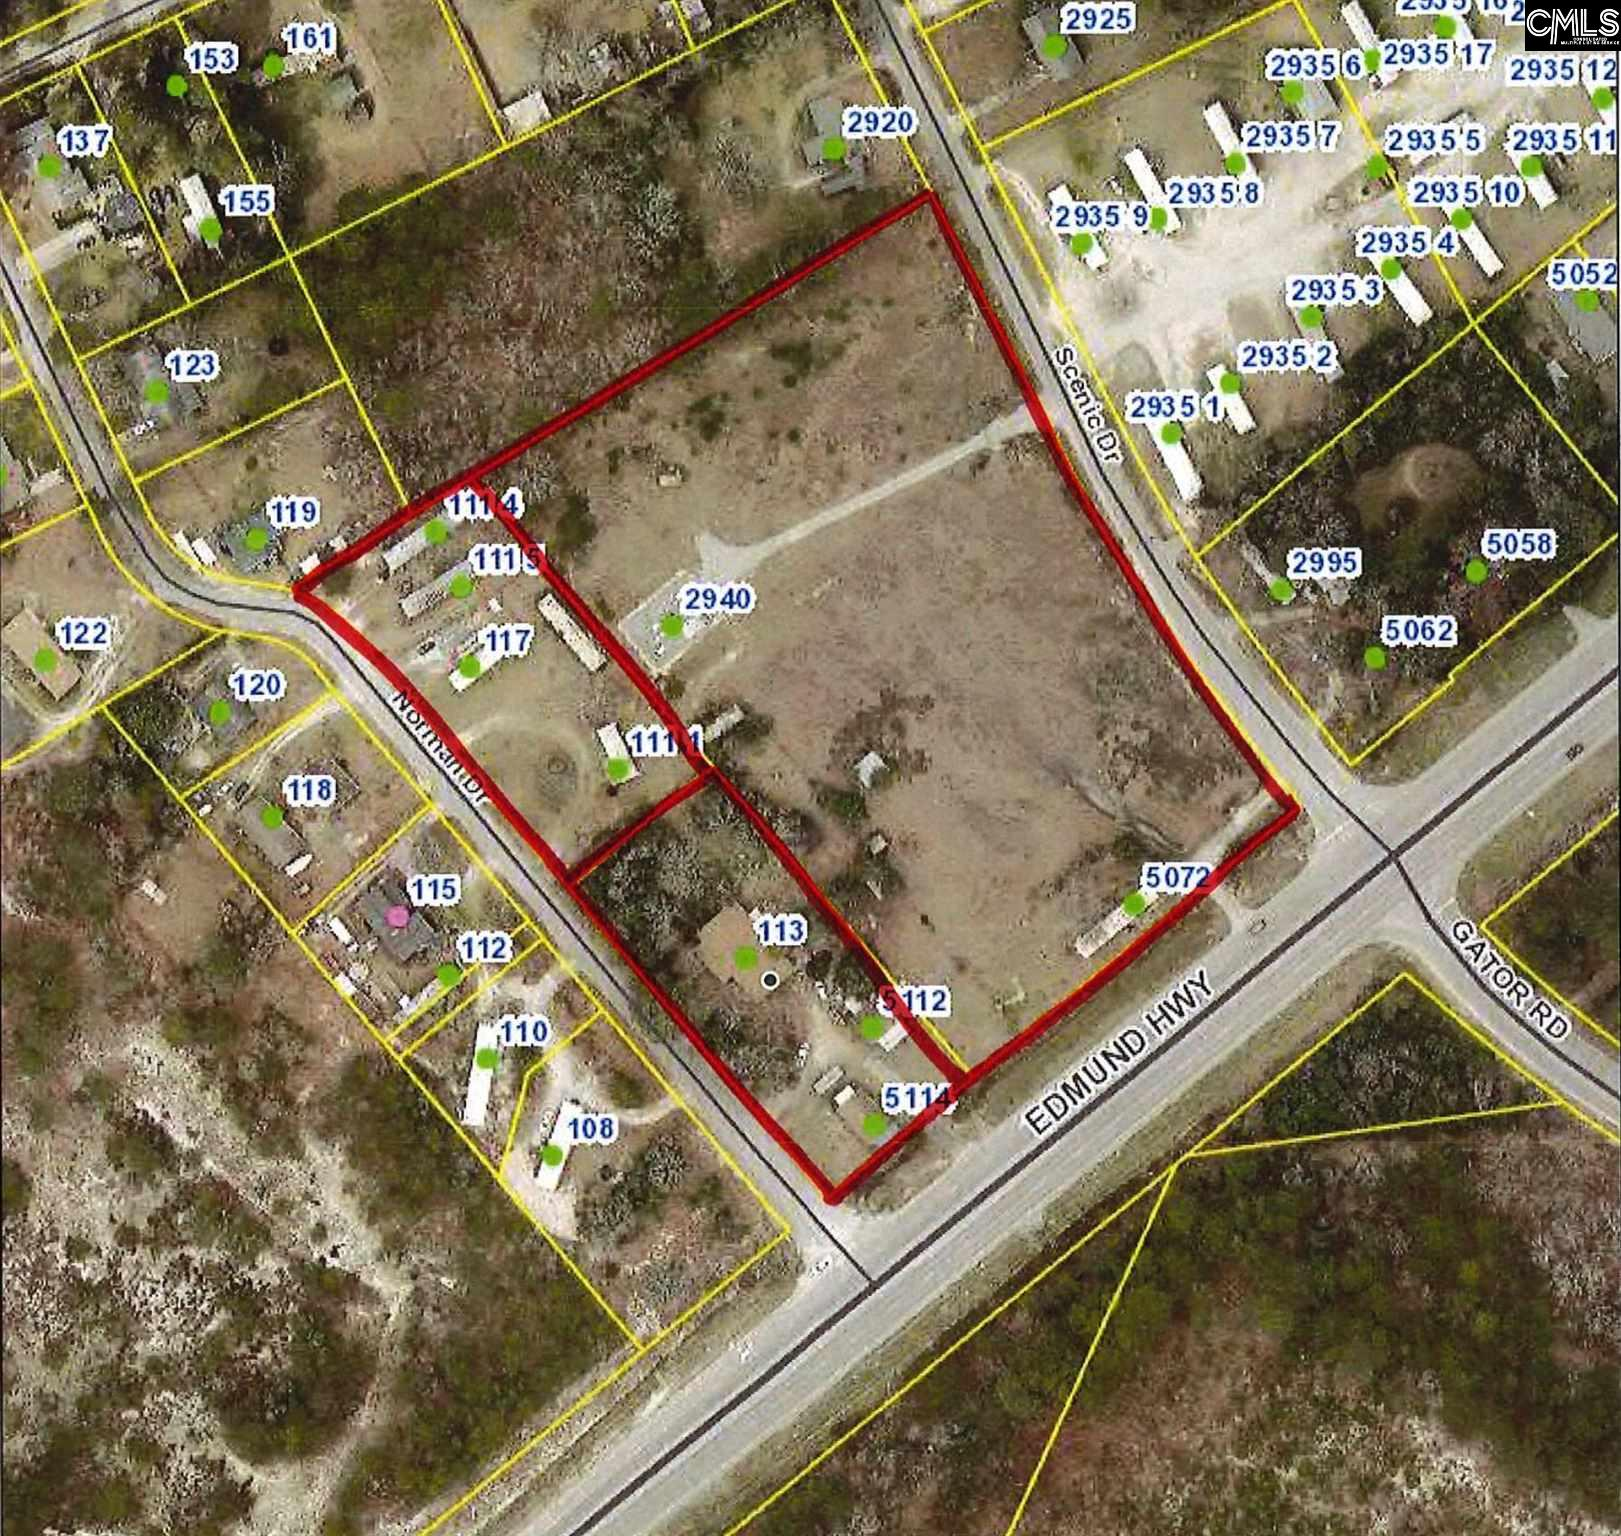 +/- 6.71 acres with a 1,200 sq. ft building that has a septic tank, a 24'x34' shed and a 4 bed, 3 bath house. It also has 4 mobile homes on the property bringing in $1,300 a month plus 1 lot rental that brings in $100 a month. All structures are being sold as-is and where-is. This property can be found on two hard corners on Edmund Hwy and has a cellphone tower on it. The owner does not own the lease on the cellphone tower. TMS# 007720-03-005 and 007720-03-011 included in sale.